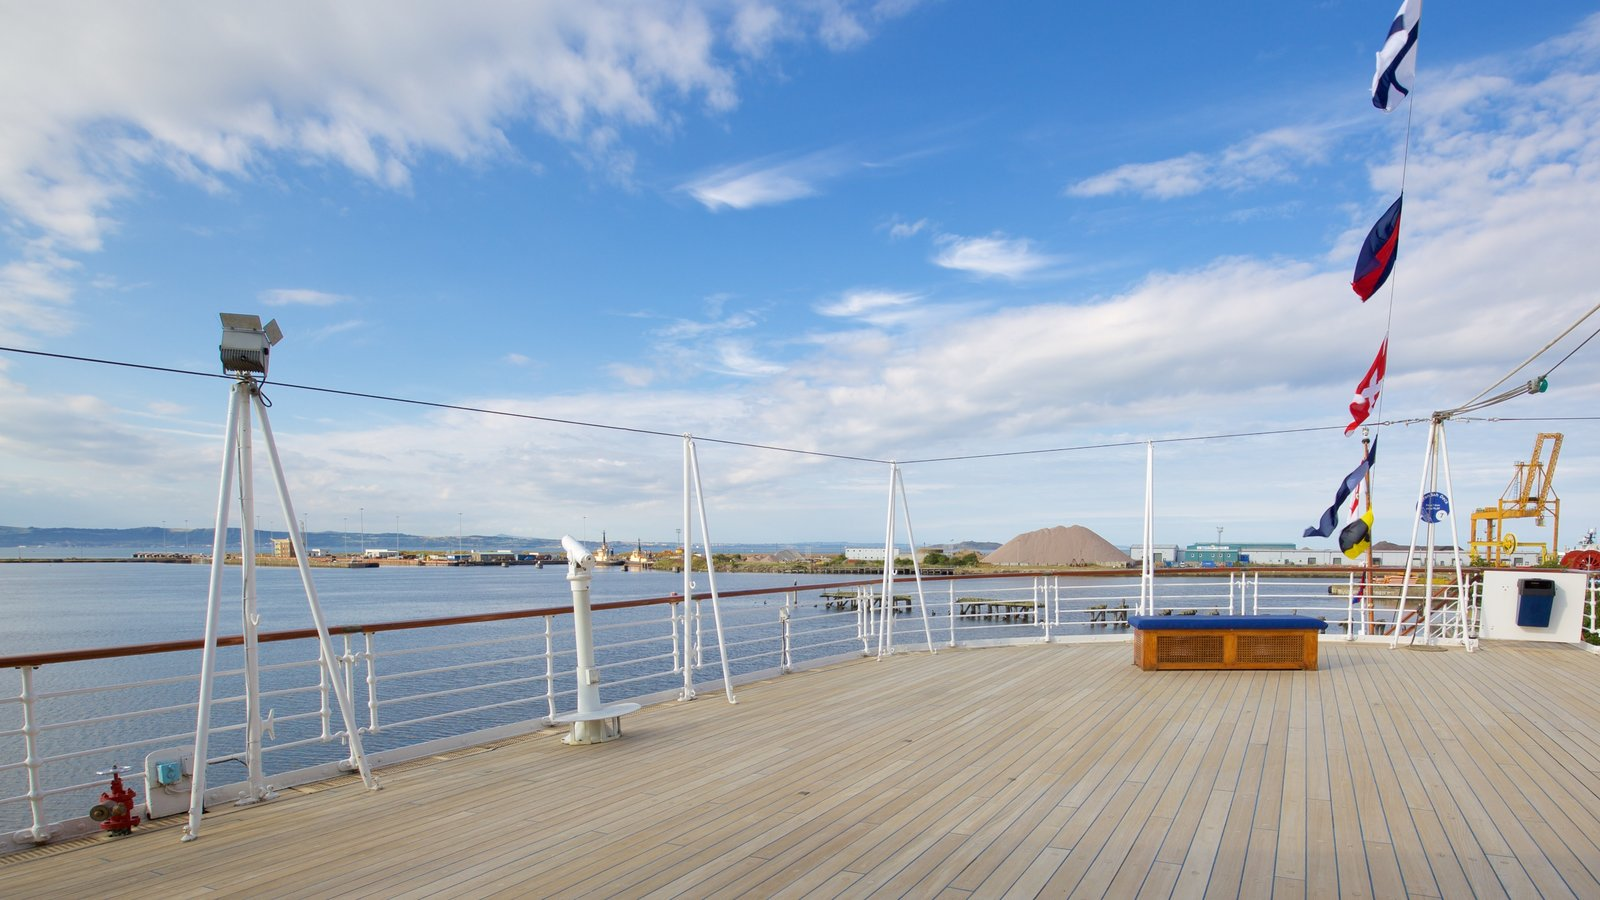 Royal Yacht Britannia which includes boating and general coastal views